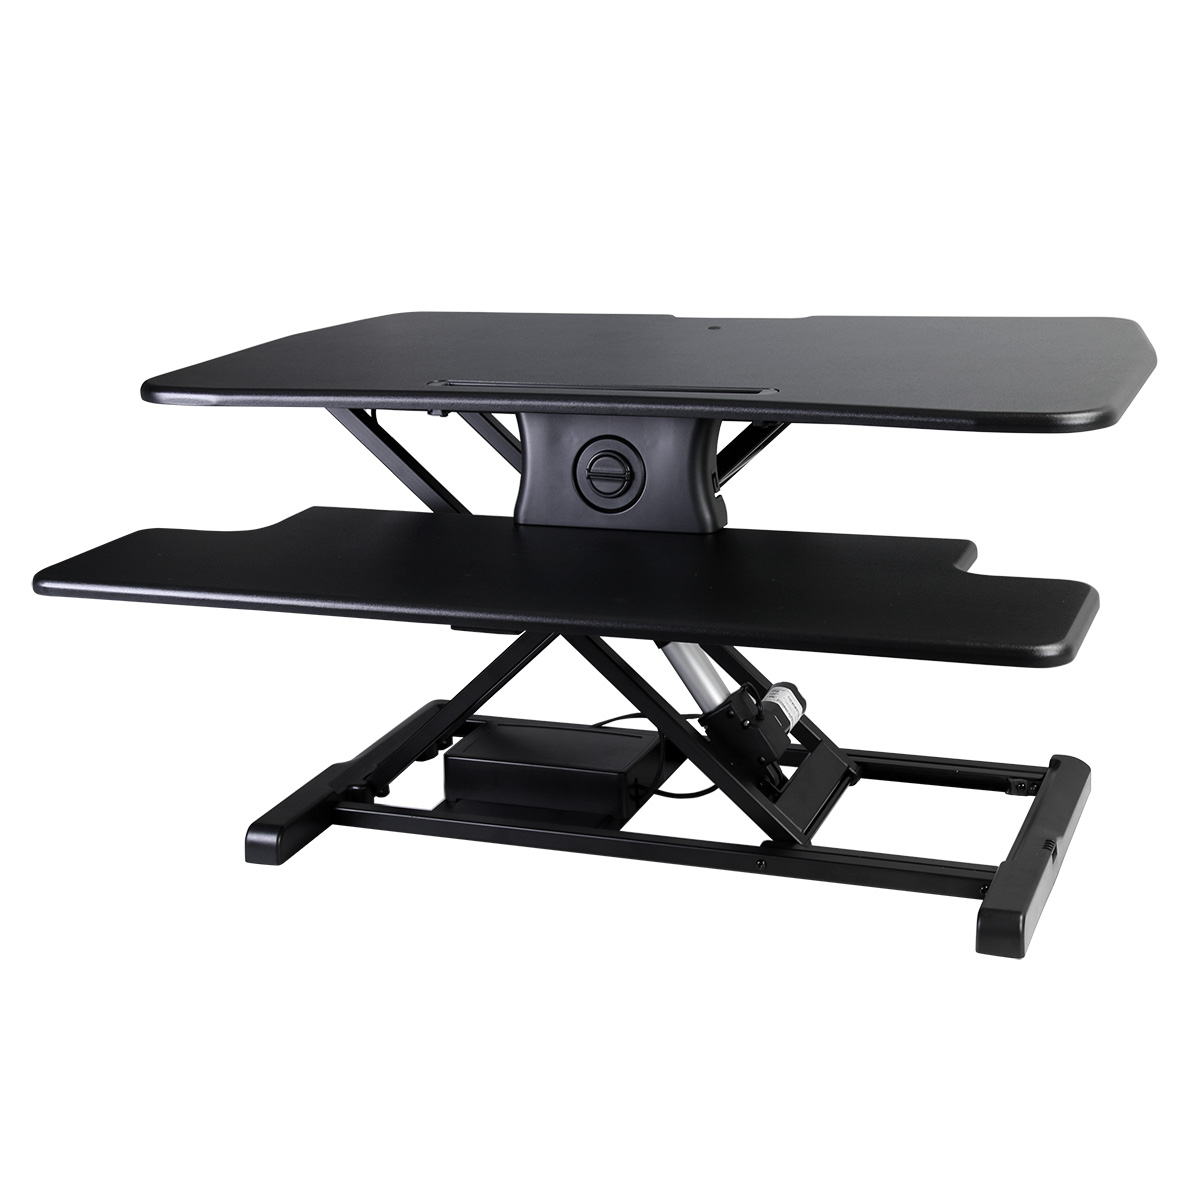 STS-DR35M Motorized Desk Riser